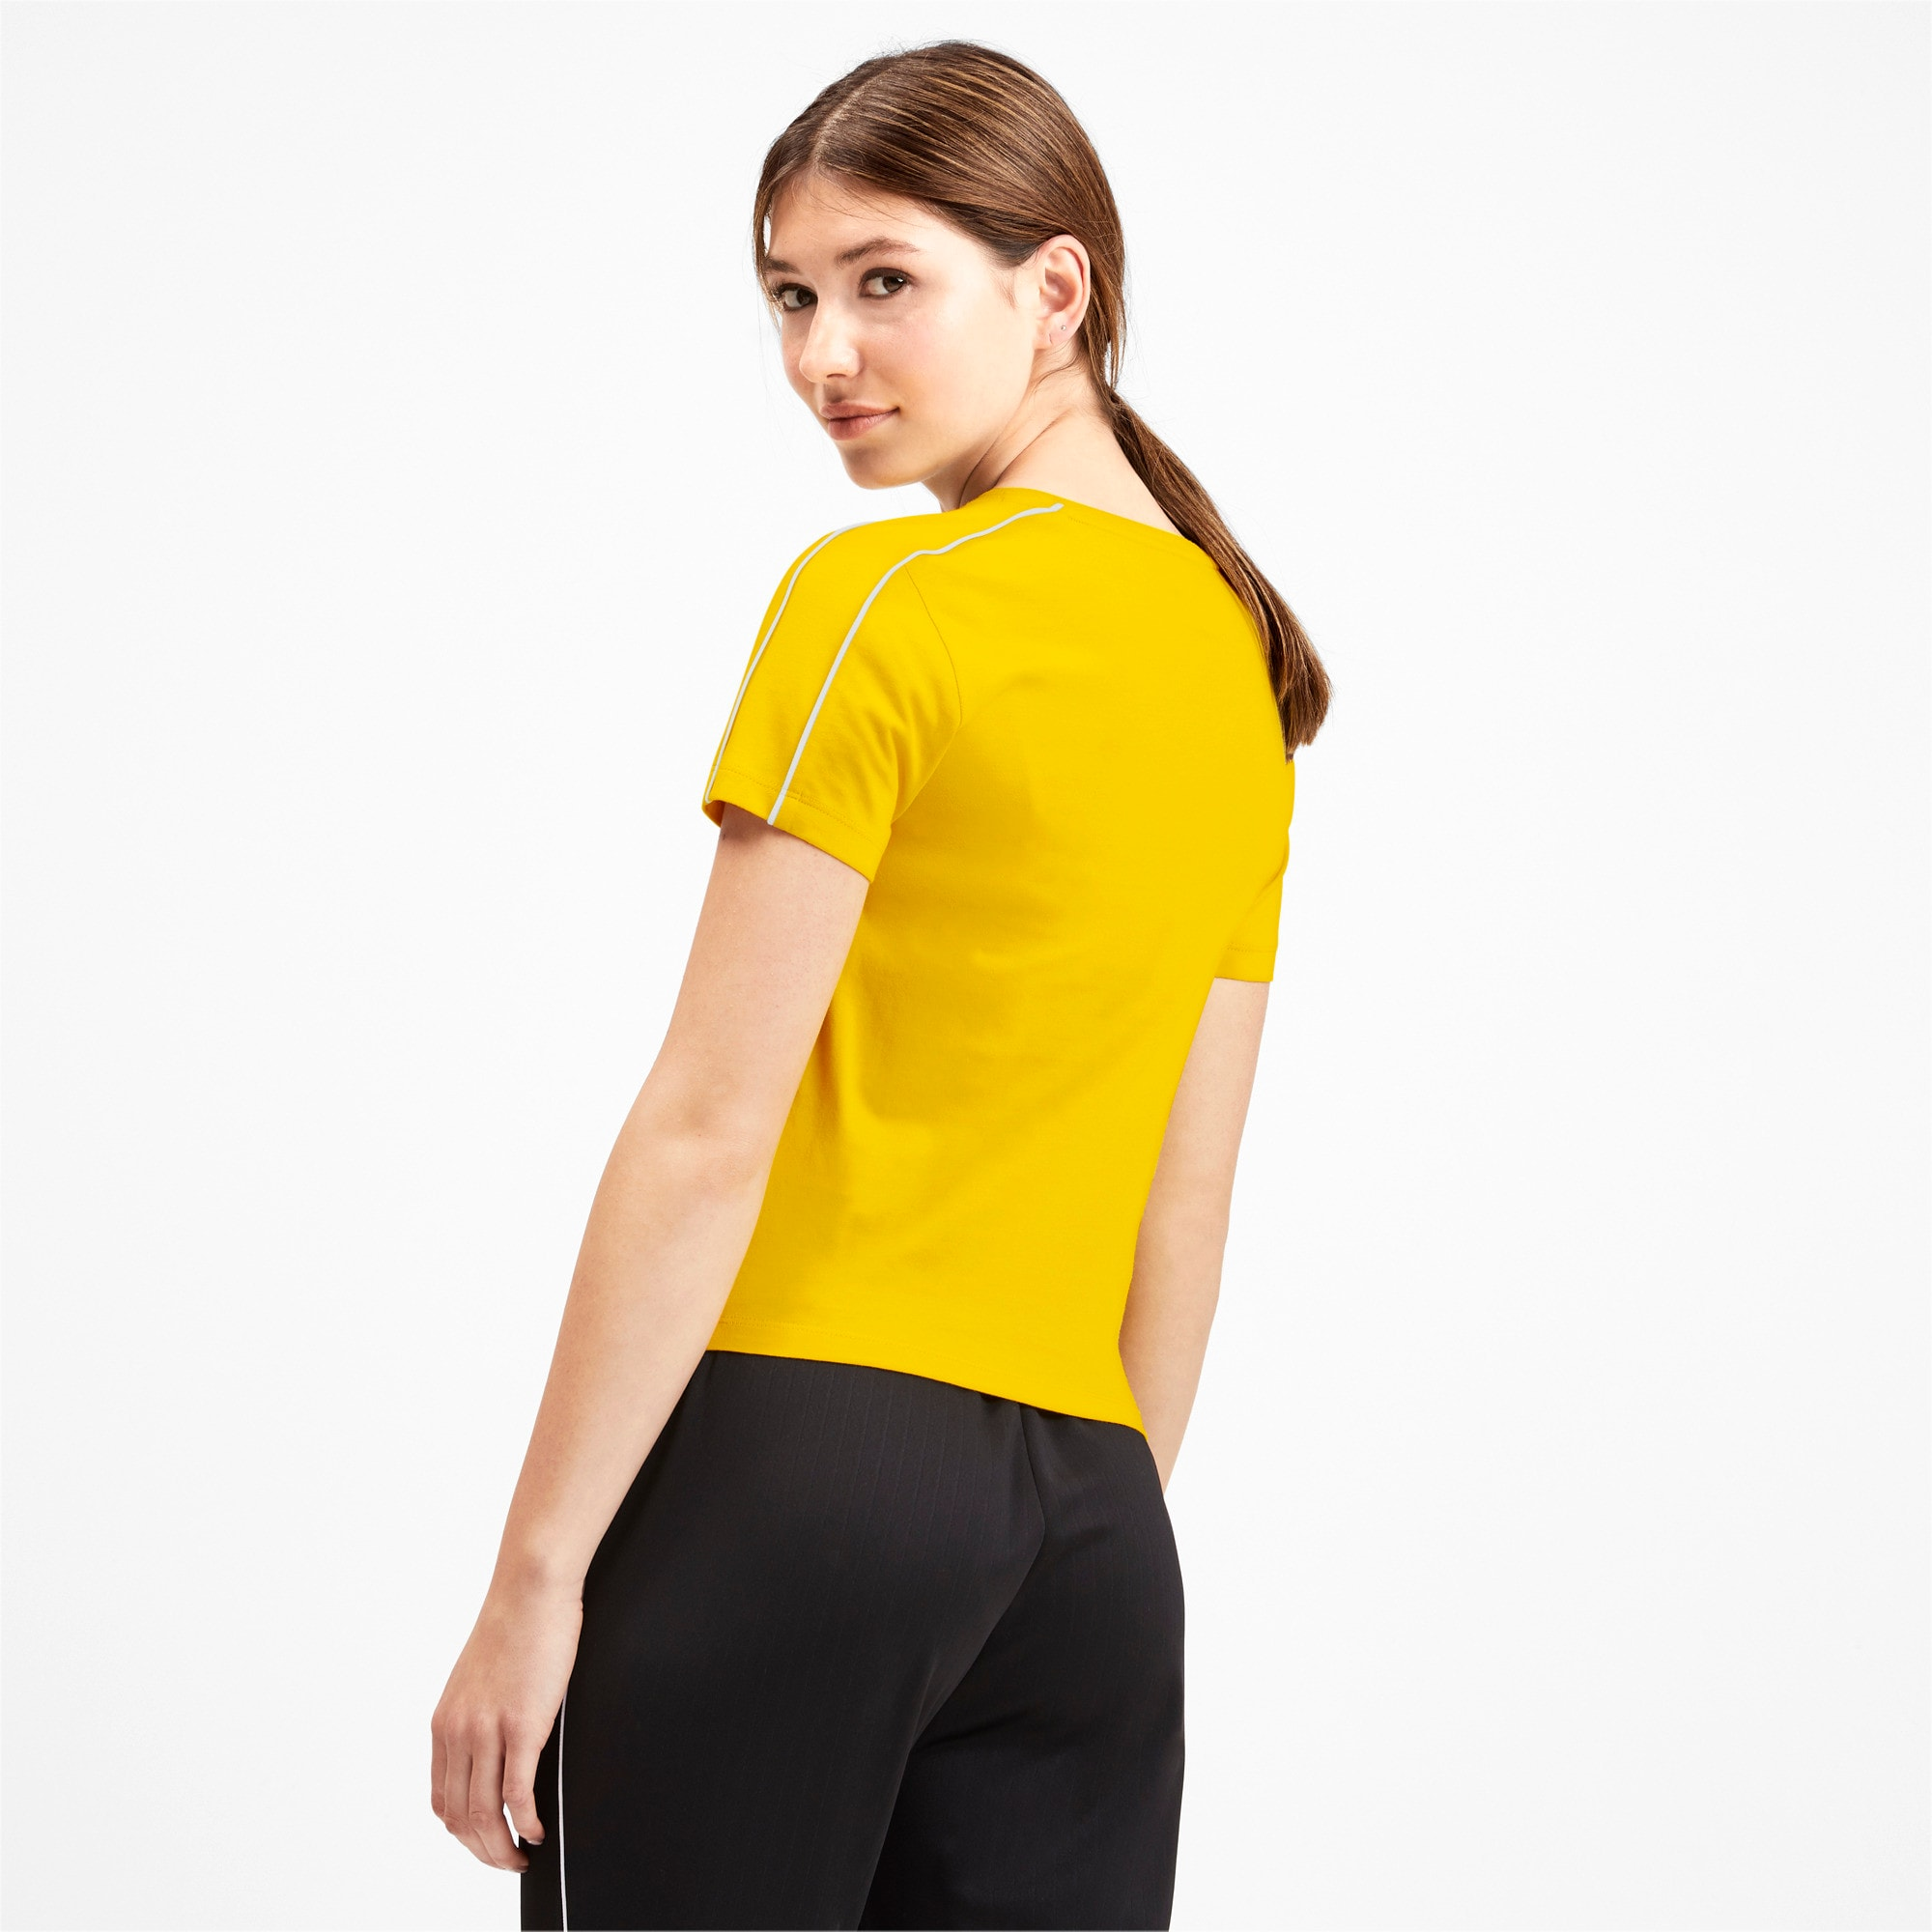 Thumbnail 3 of Classics Tight Women's Top, Sulphur, medium